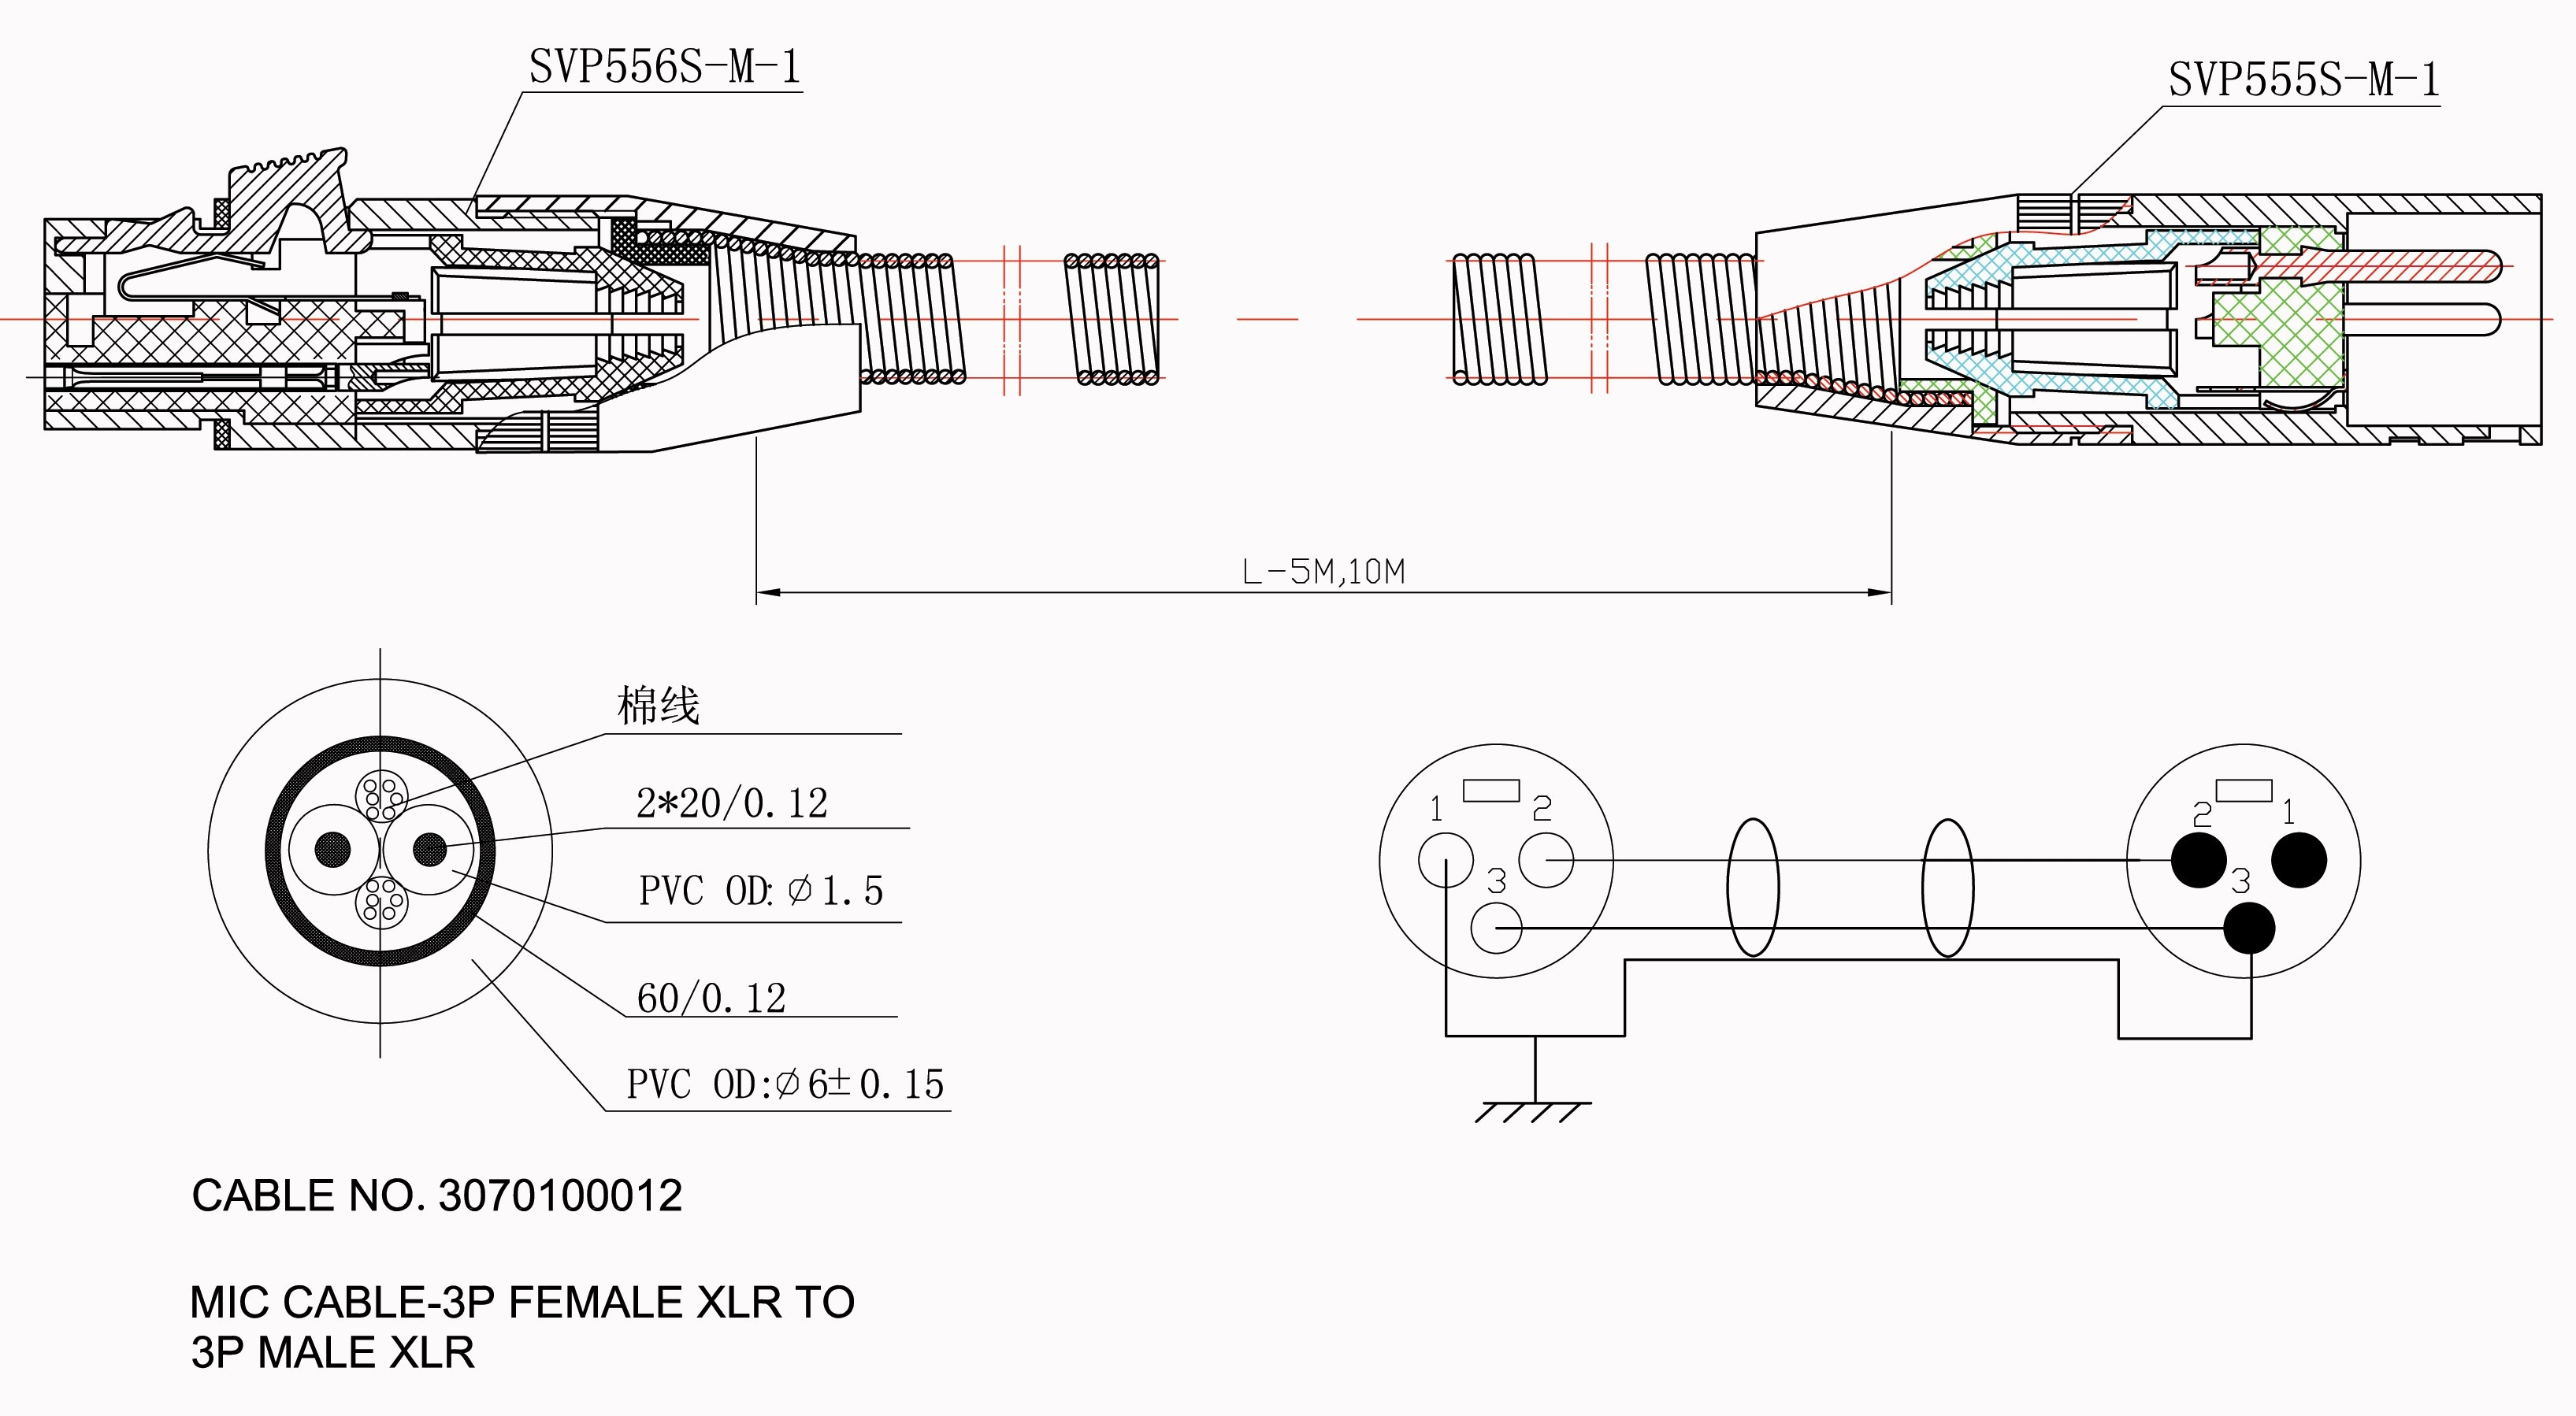 stage pin connector wiring diagram Download-3 Pin Dmx Cable Wiring Diagram natebird 13-m